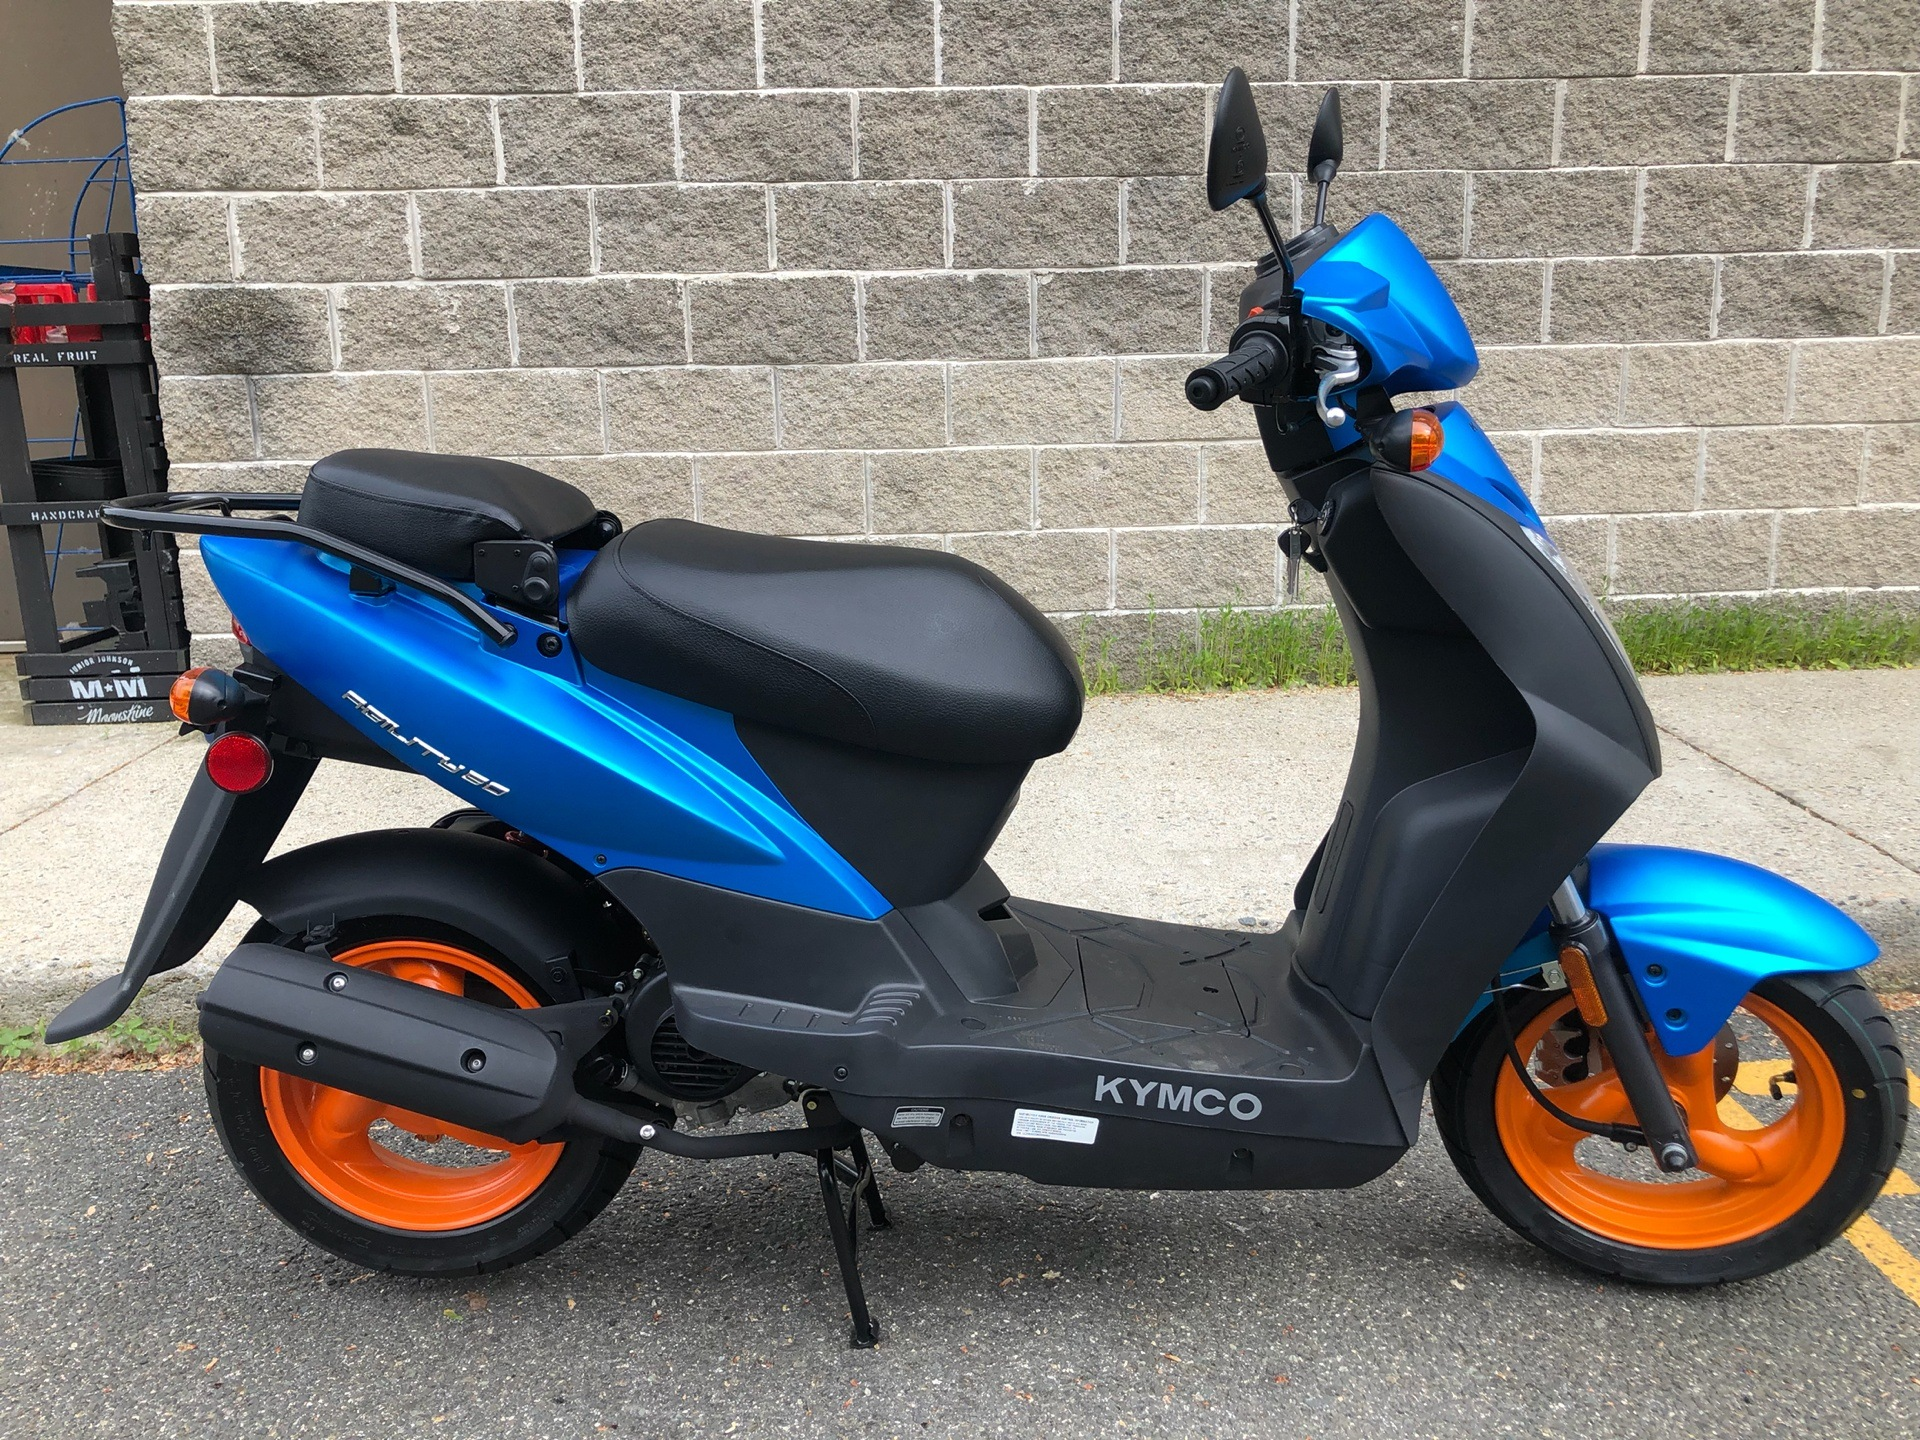 2019 Kymco Agility 50 in Enfield, Connecticut - Photo 2